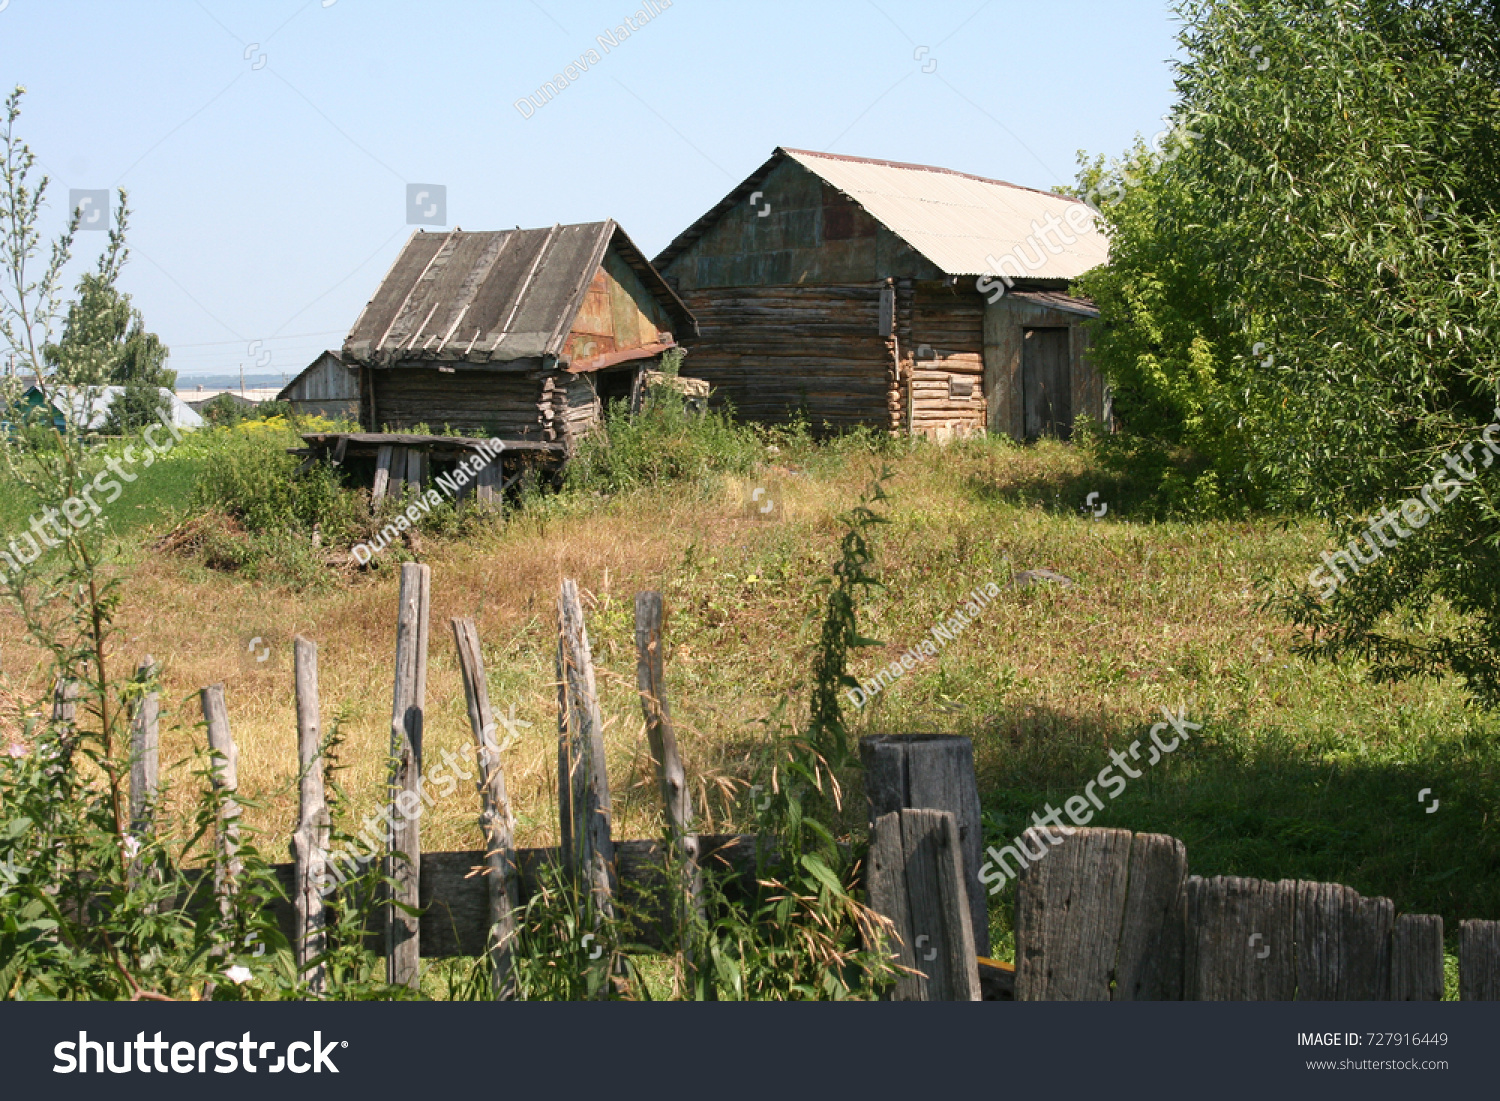 Rural settlements of Russia: from the start to the municipality 56